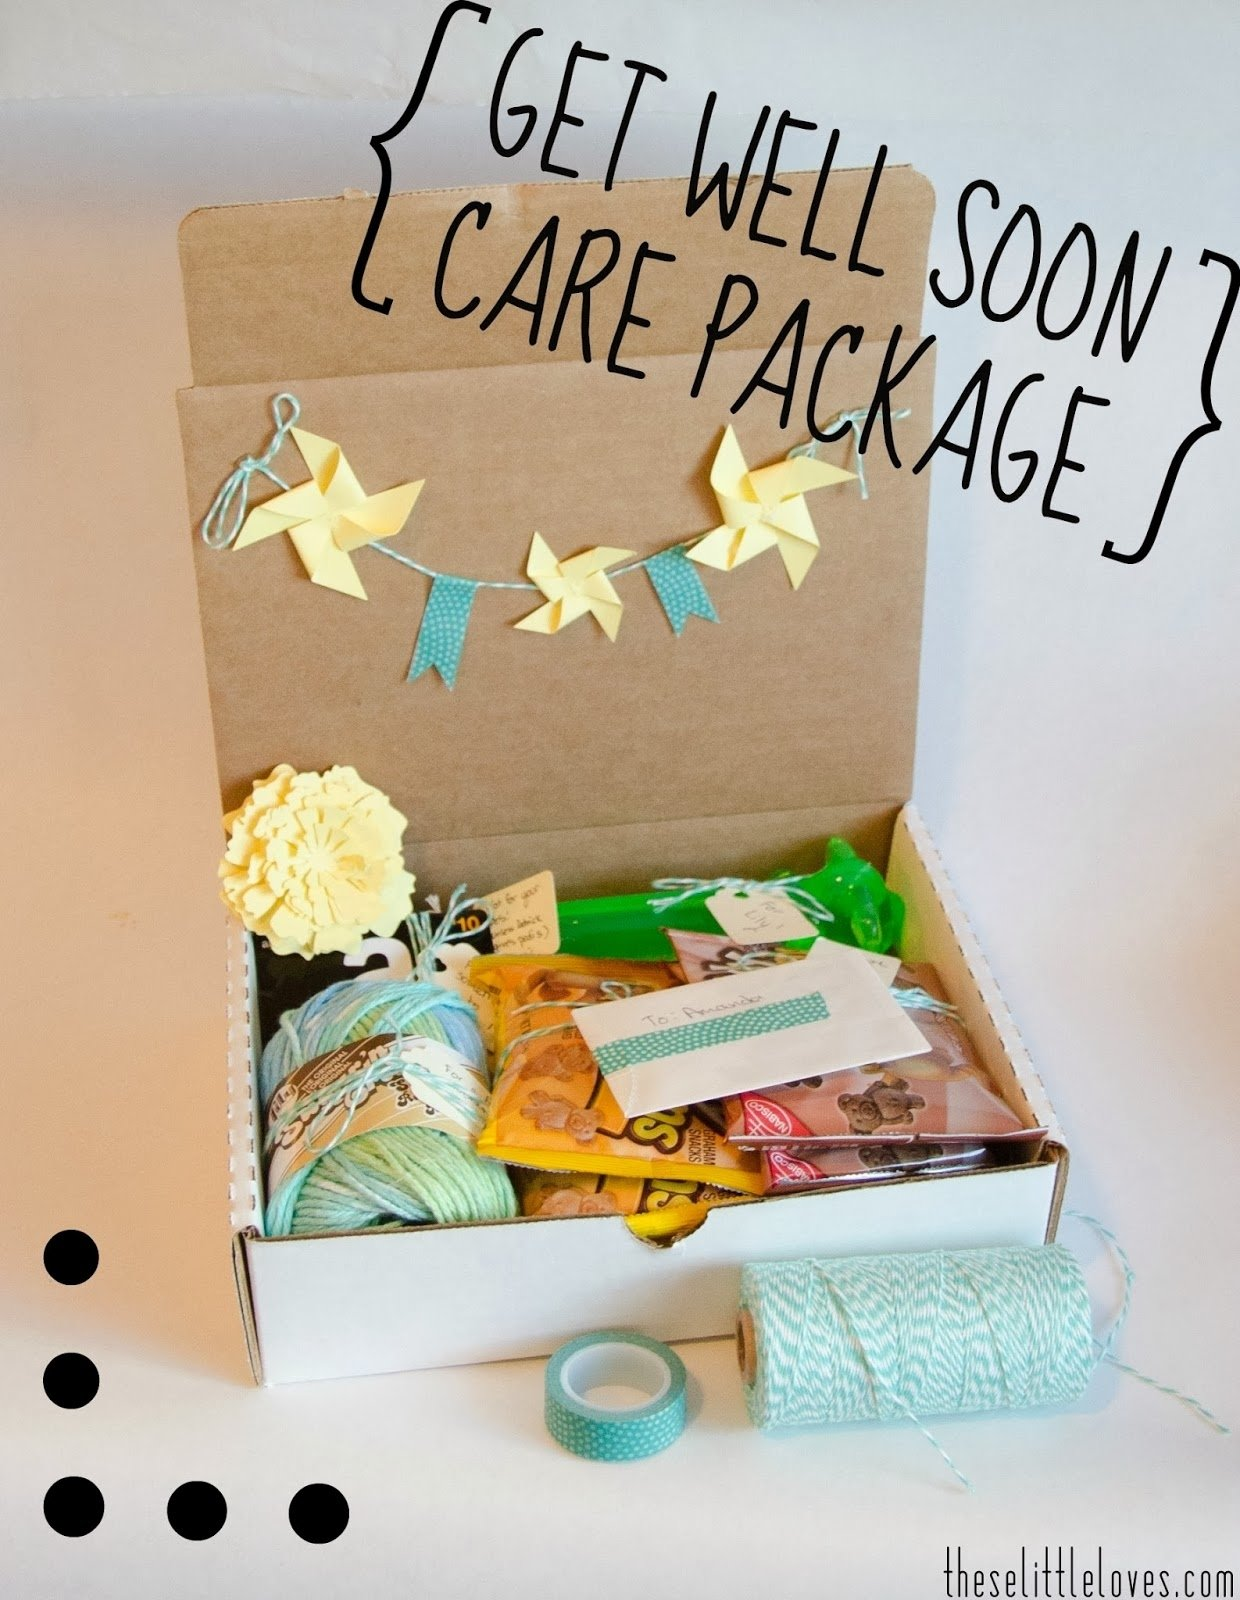 10 Cute Get Well Care Package Ideas these little loves a dont go crazy while getting better activity 2021